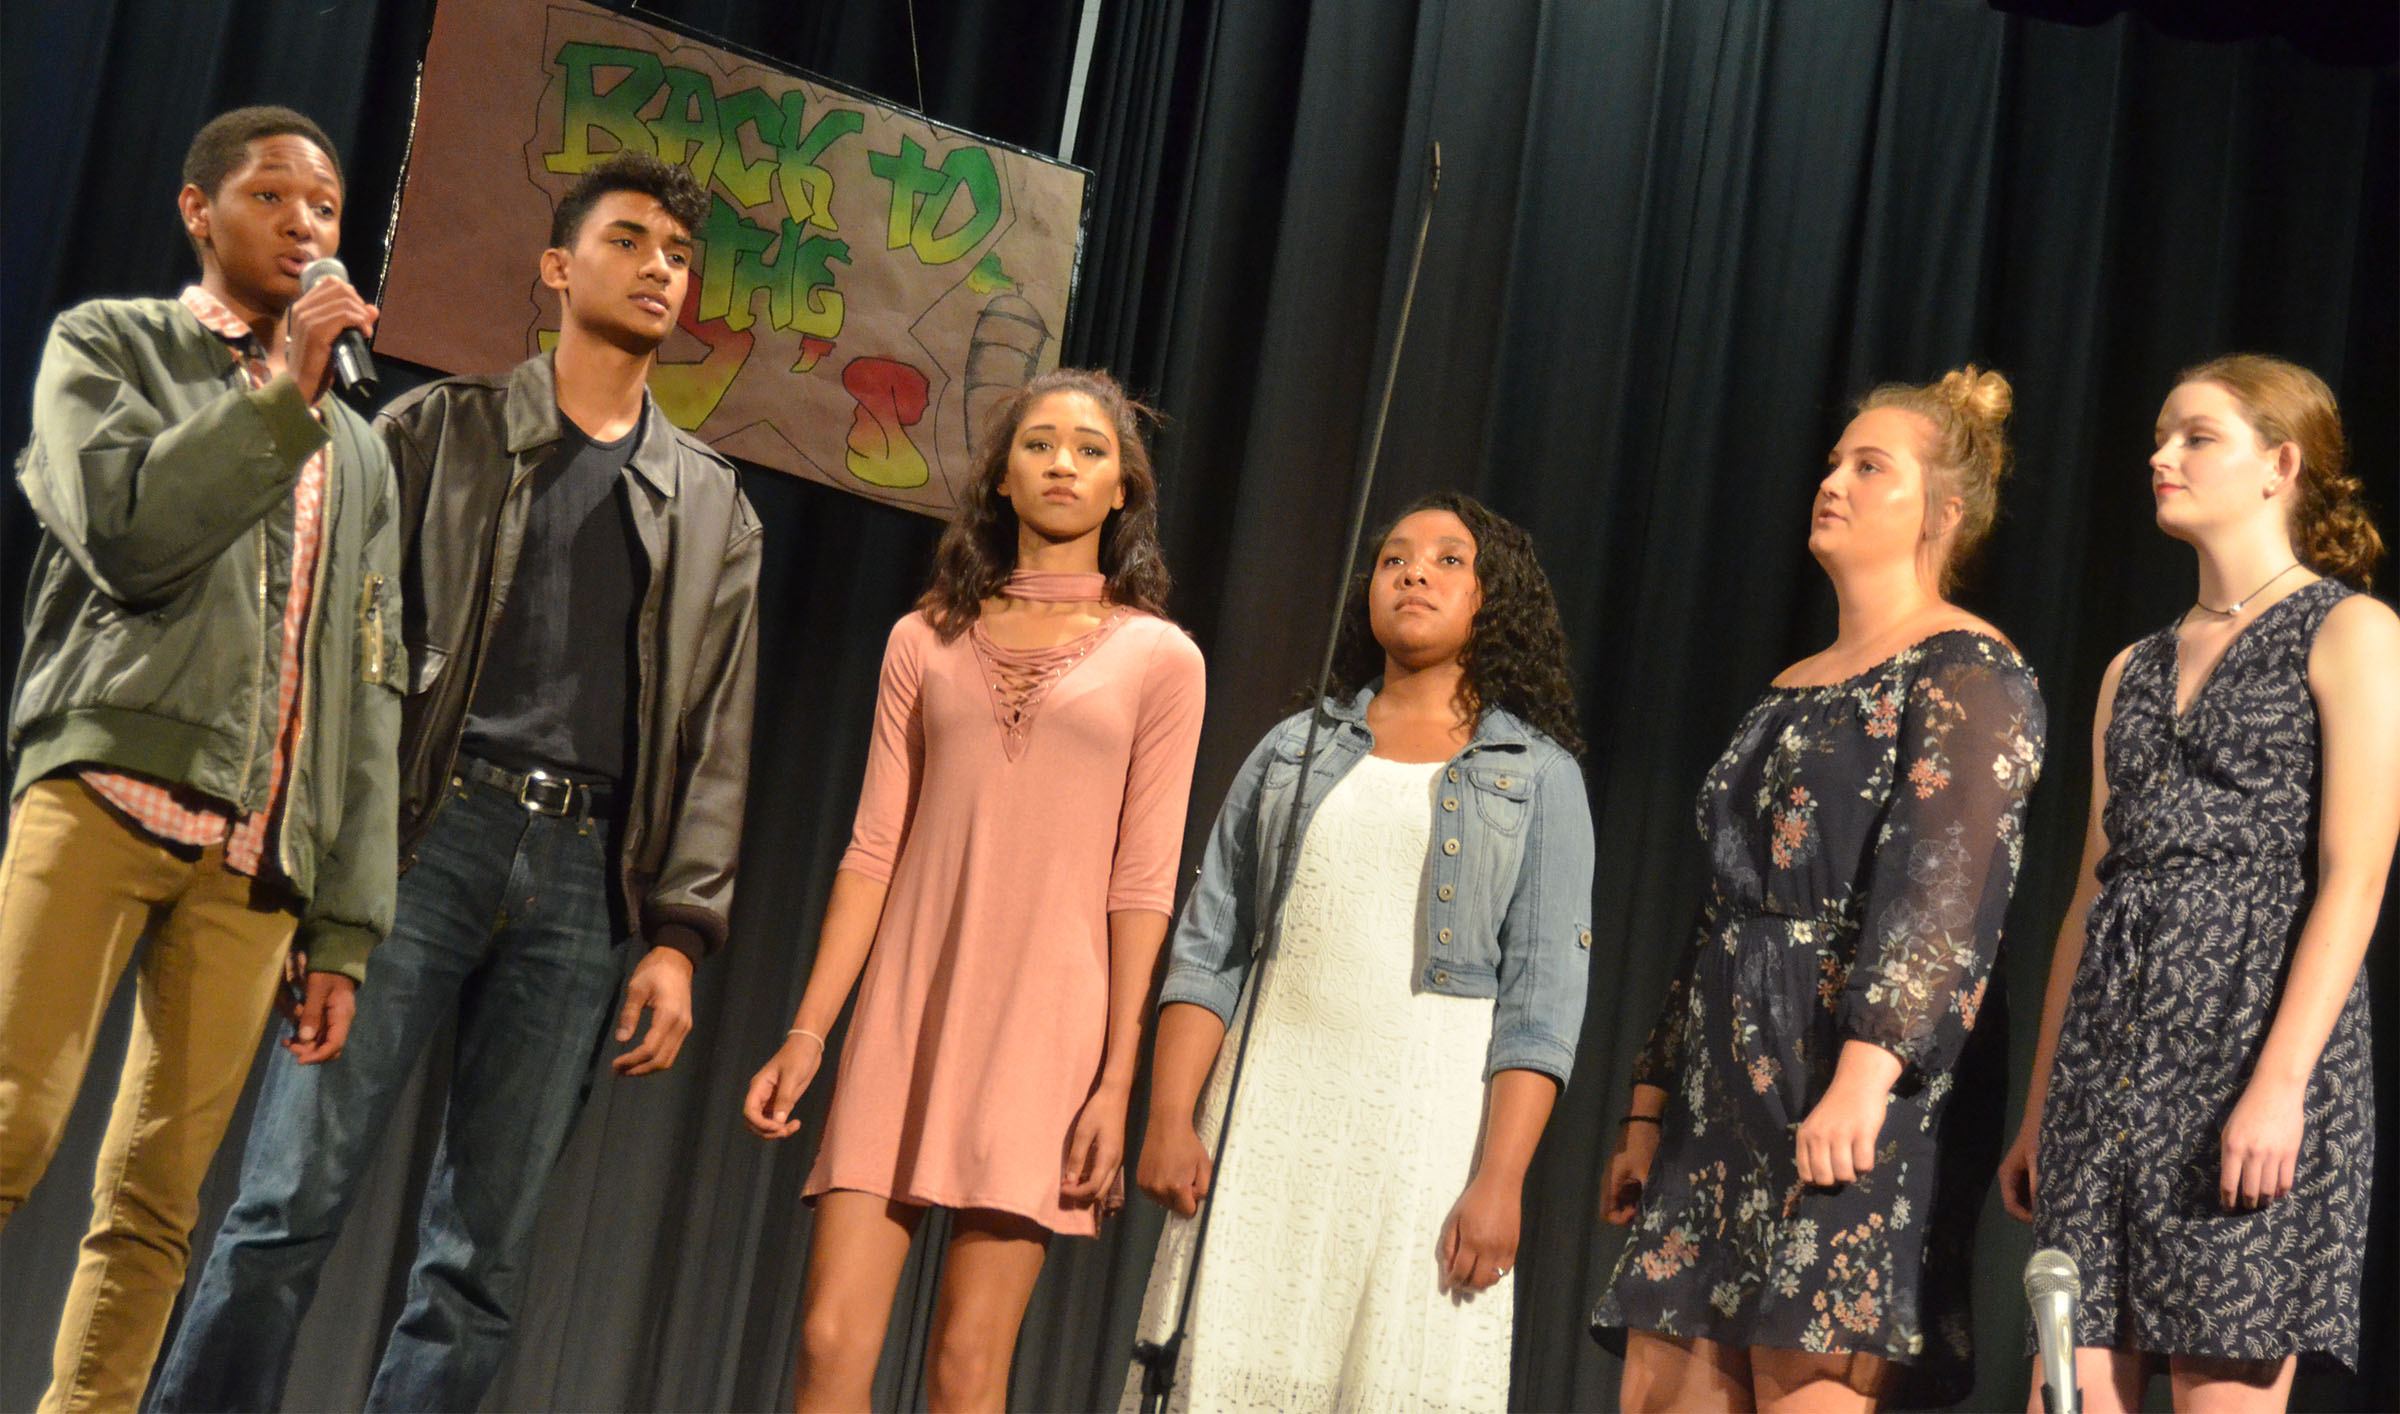 From left, CHS seniors Jaleel Cowan, Daniel Silva, Alexis Shears, Kayla Atkinson, Brenna Wethington and Blair Lamb perform together.